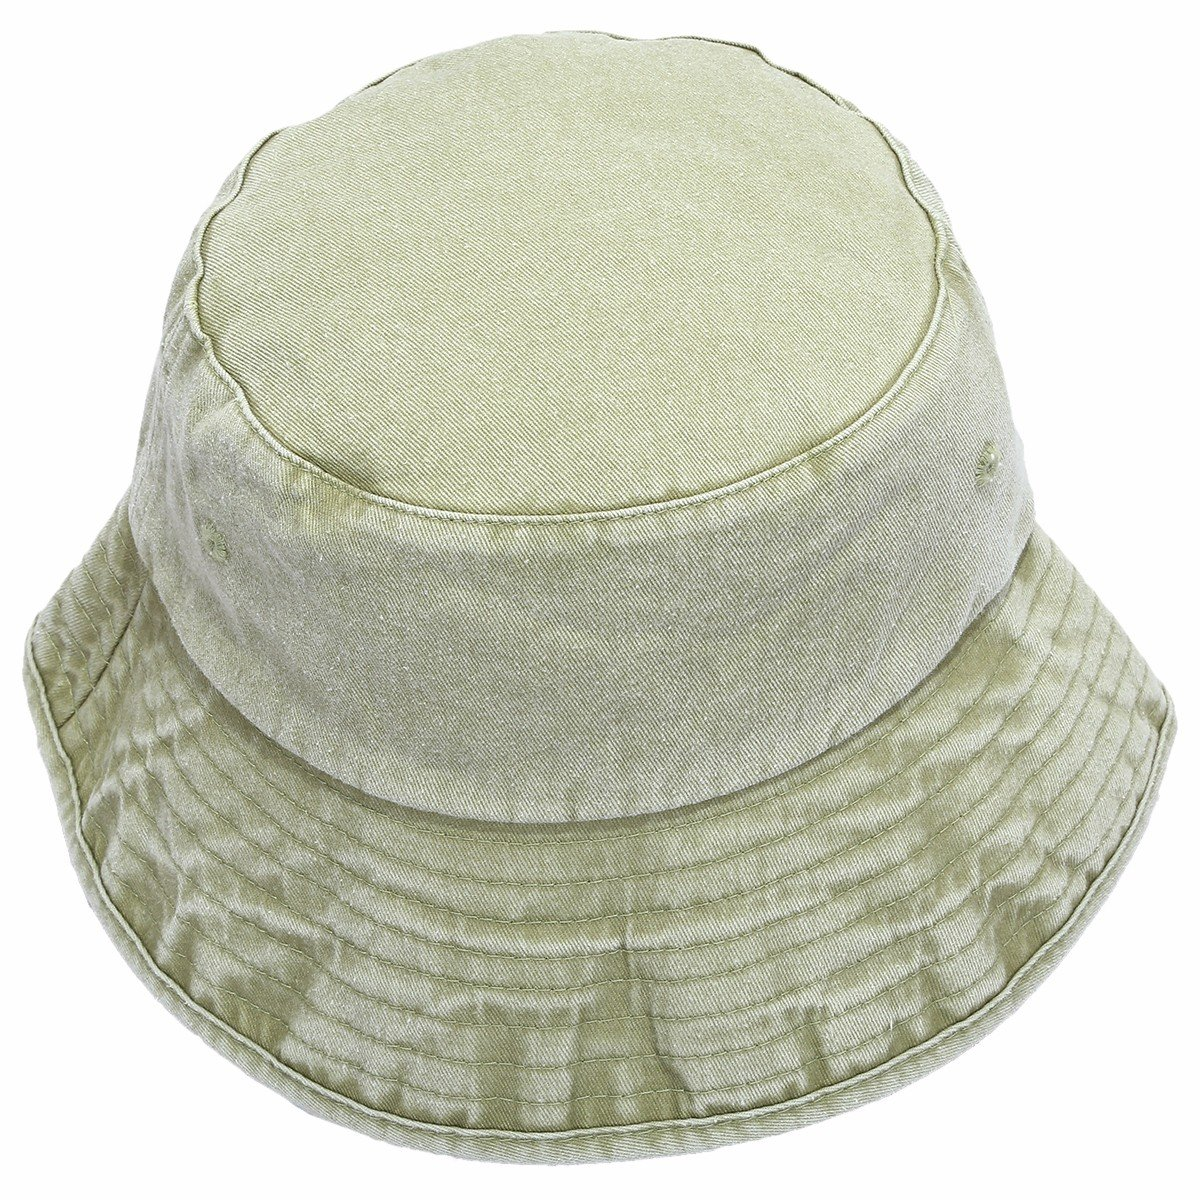 moonsix Bucket Hats for Men Women,Sun Fishing Hunting Flat Top Casual Outdoor Cap,Washed Style,Light Green